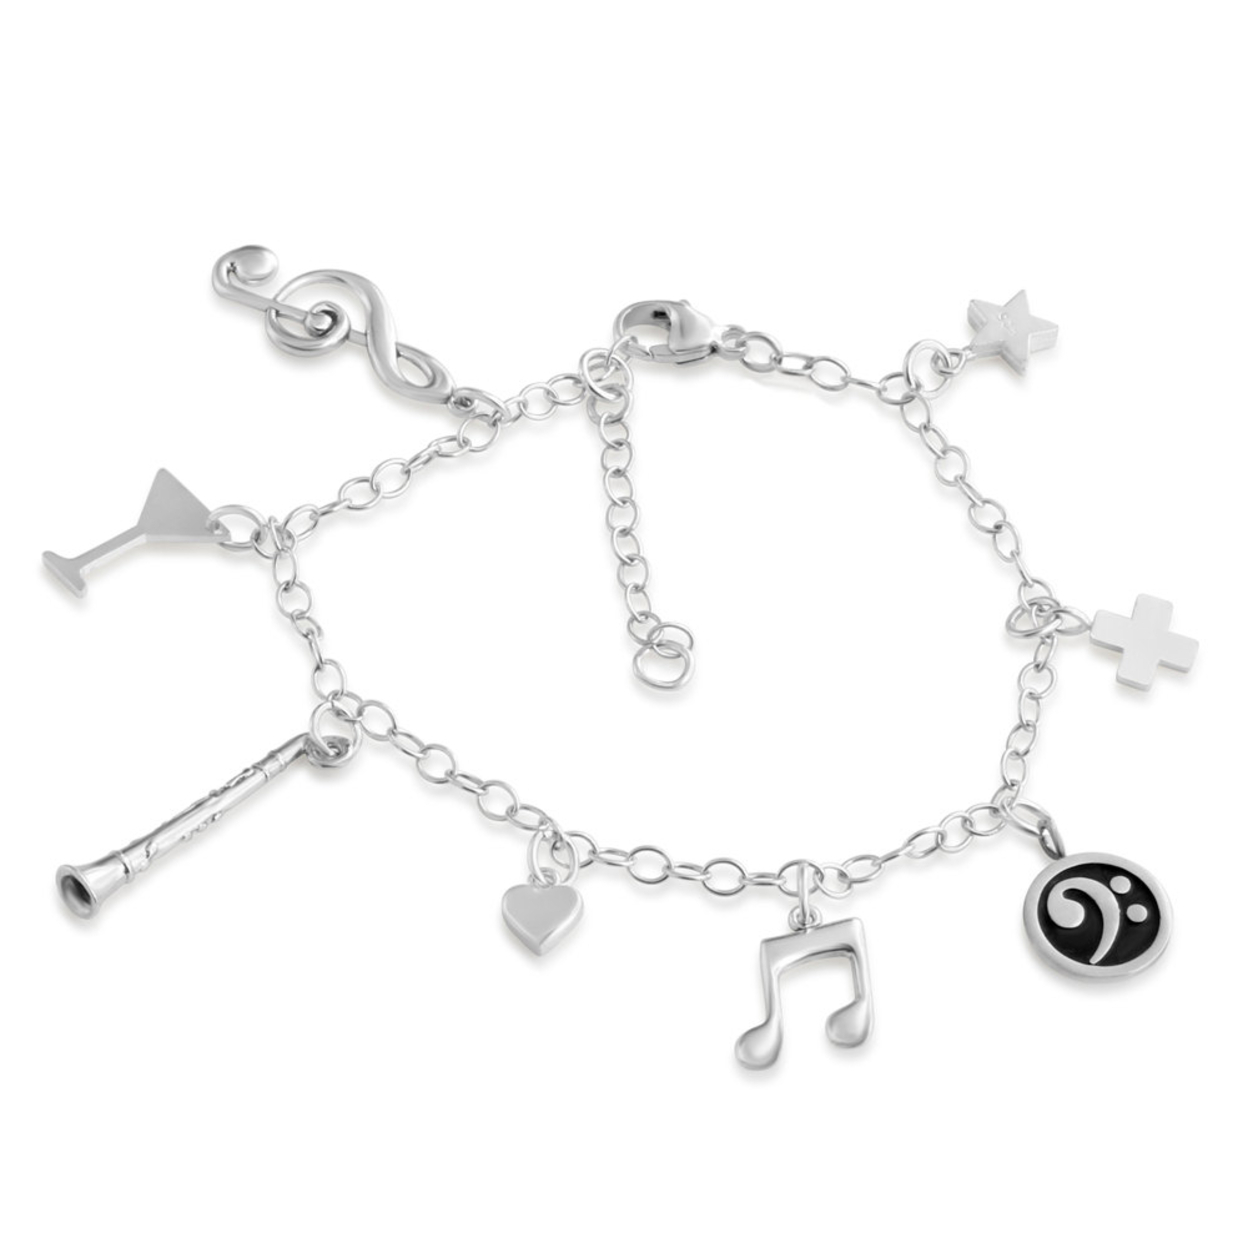 Music Lovers Musical Note Treble Clef Flute Star Heart Plus Cocktail Glass Multi Charm Bracelet #925 Sterling Silver #azaggi B0553s